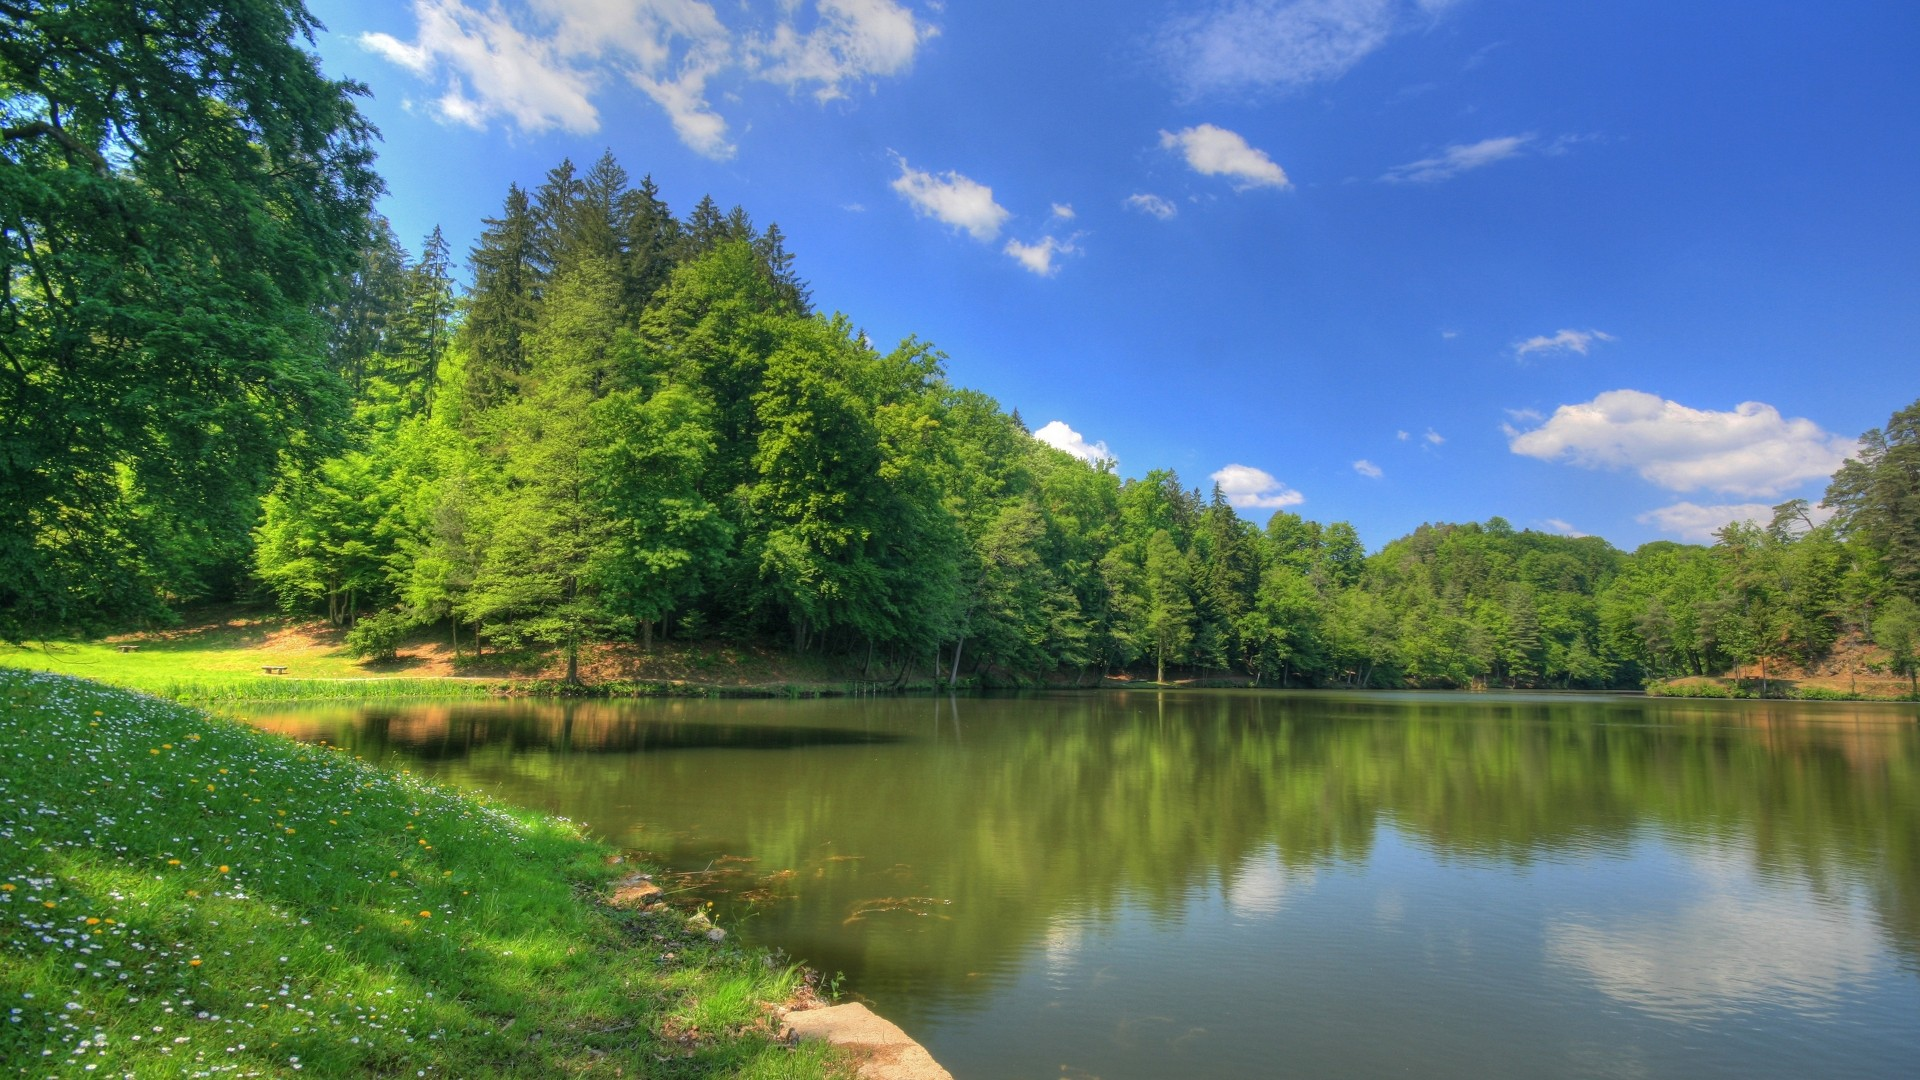 Forest Lake in Russia, photo wallpapers of nature